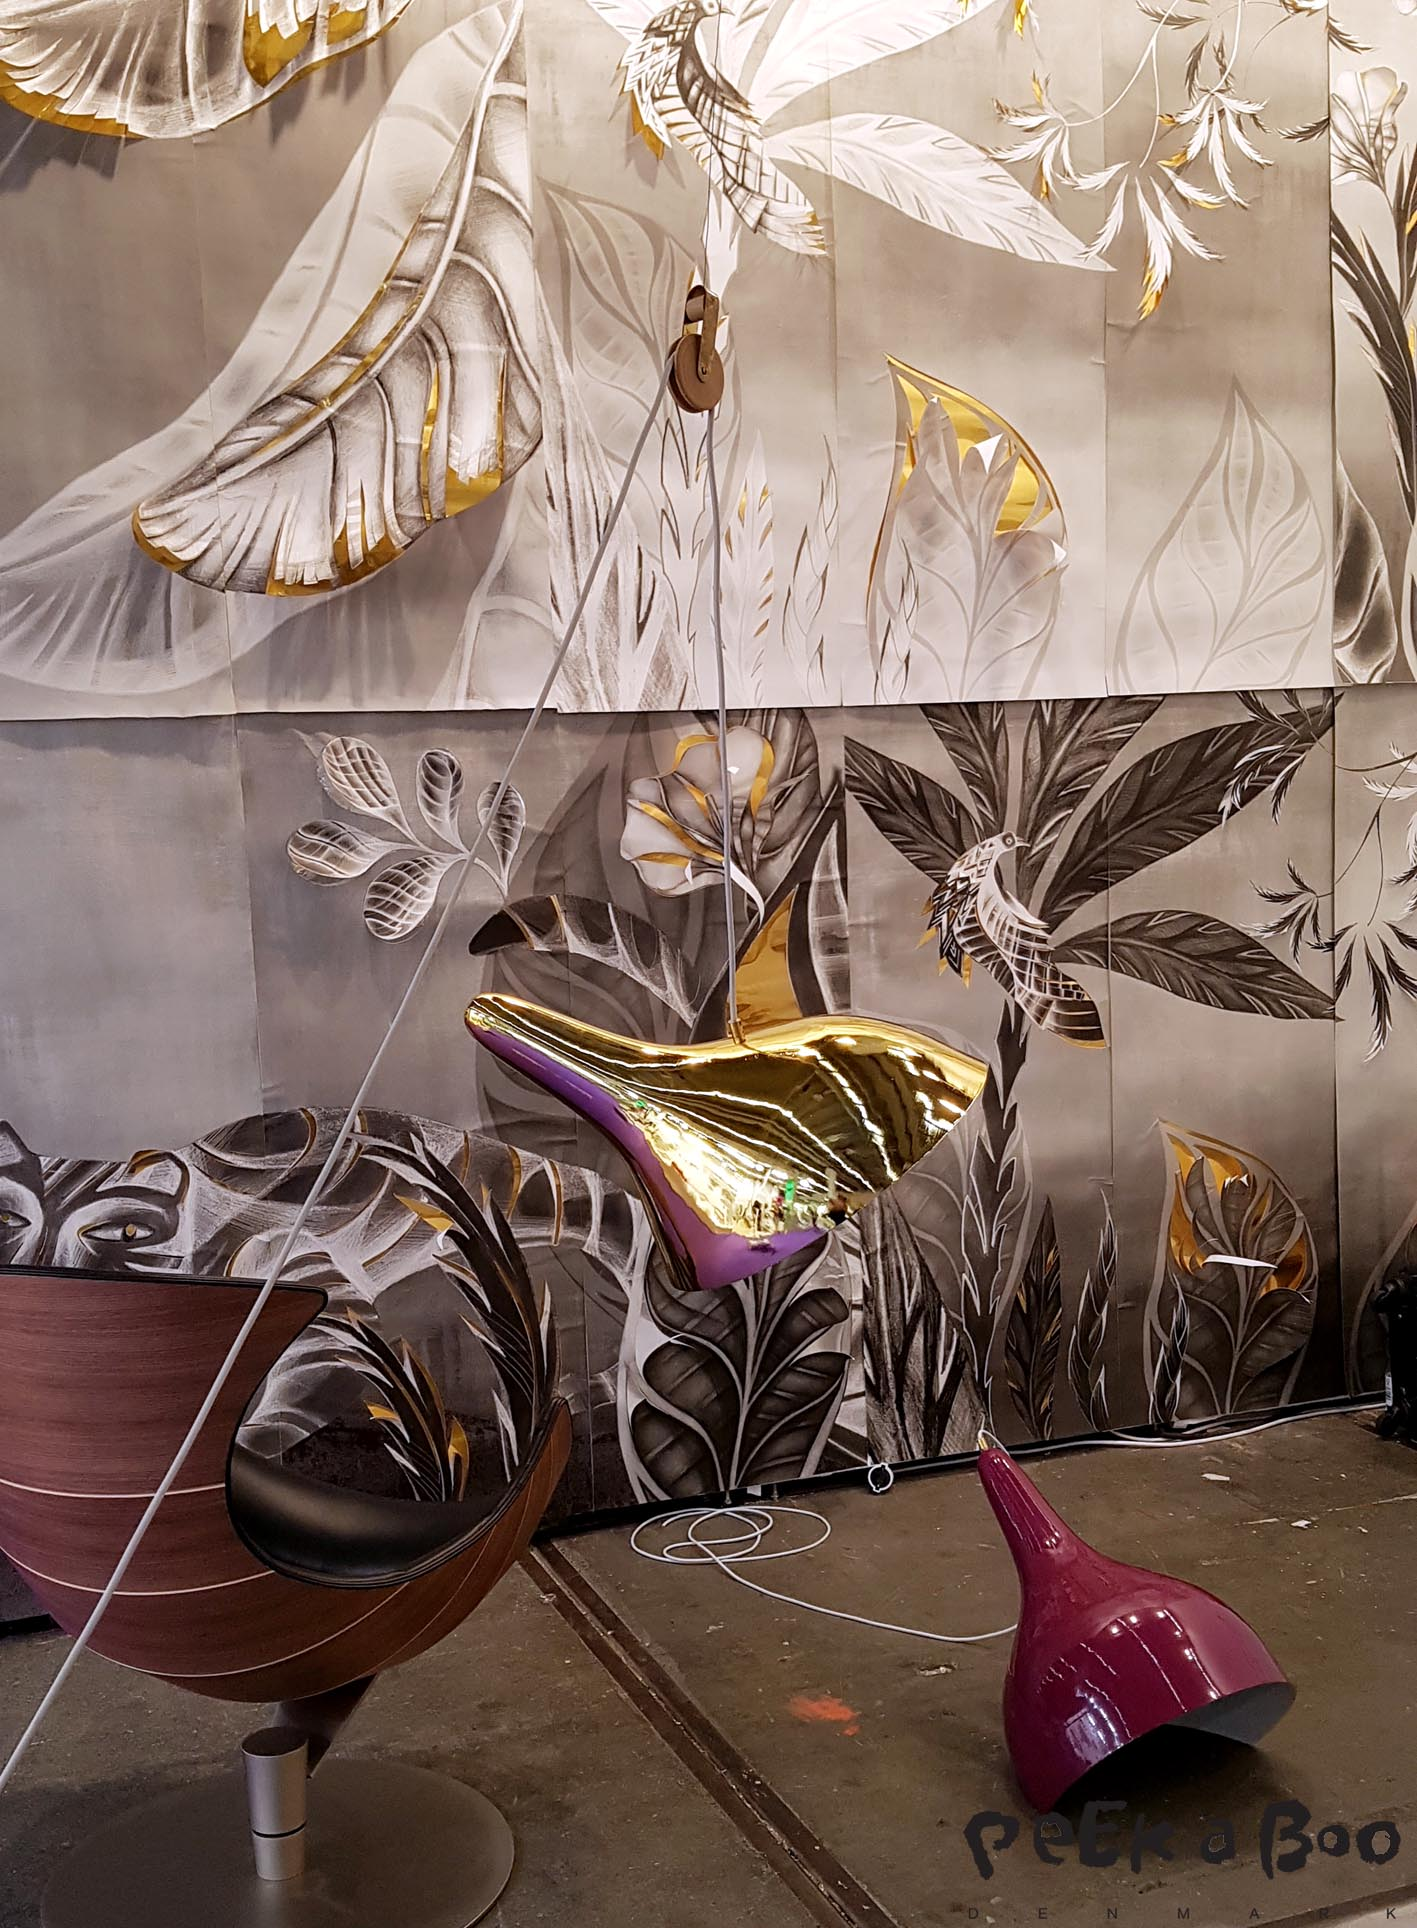 The spectacular wall decoration is made by Sofie Børsting and the fantastic lamp is designed by DMOCH.